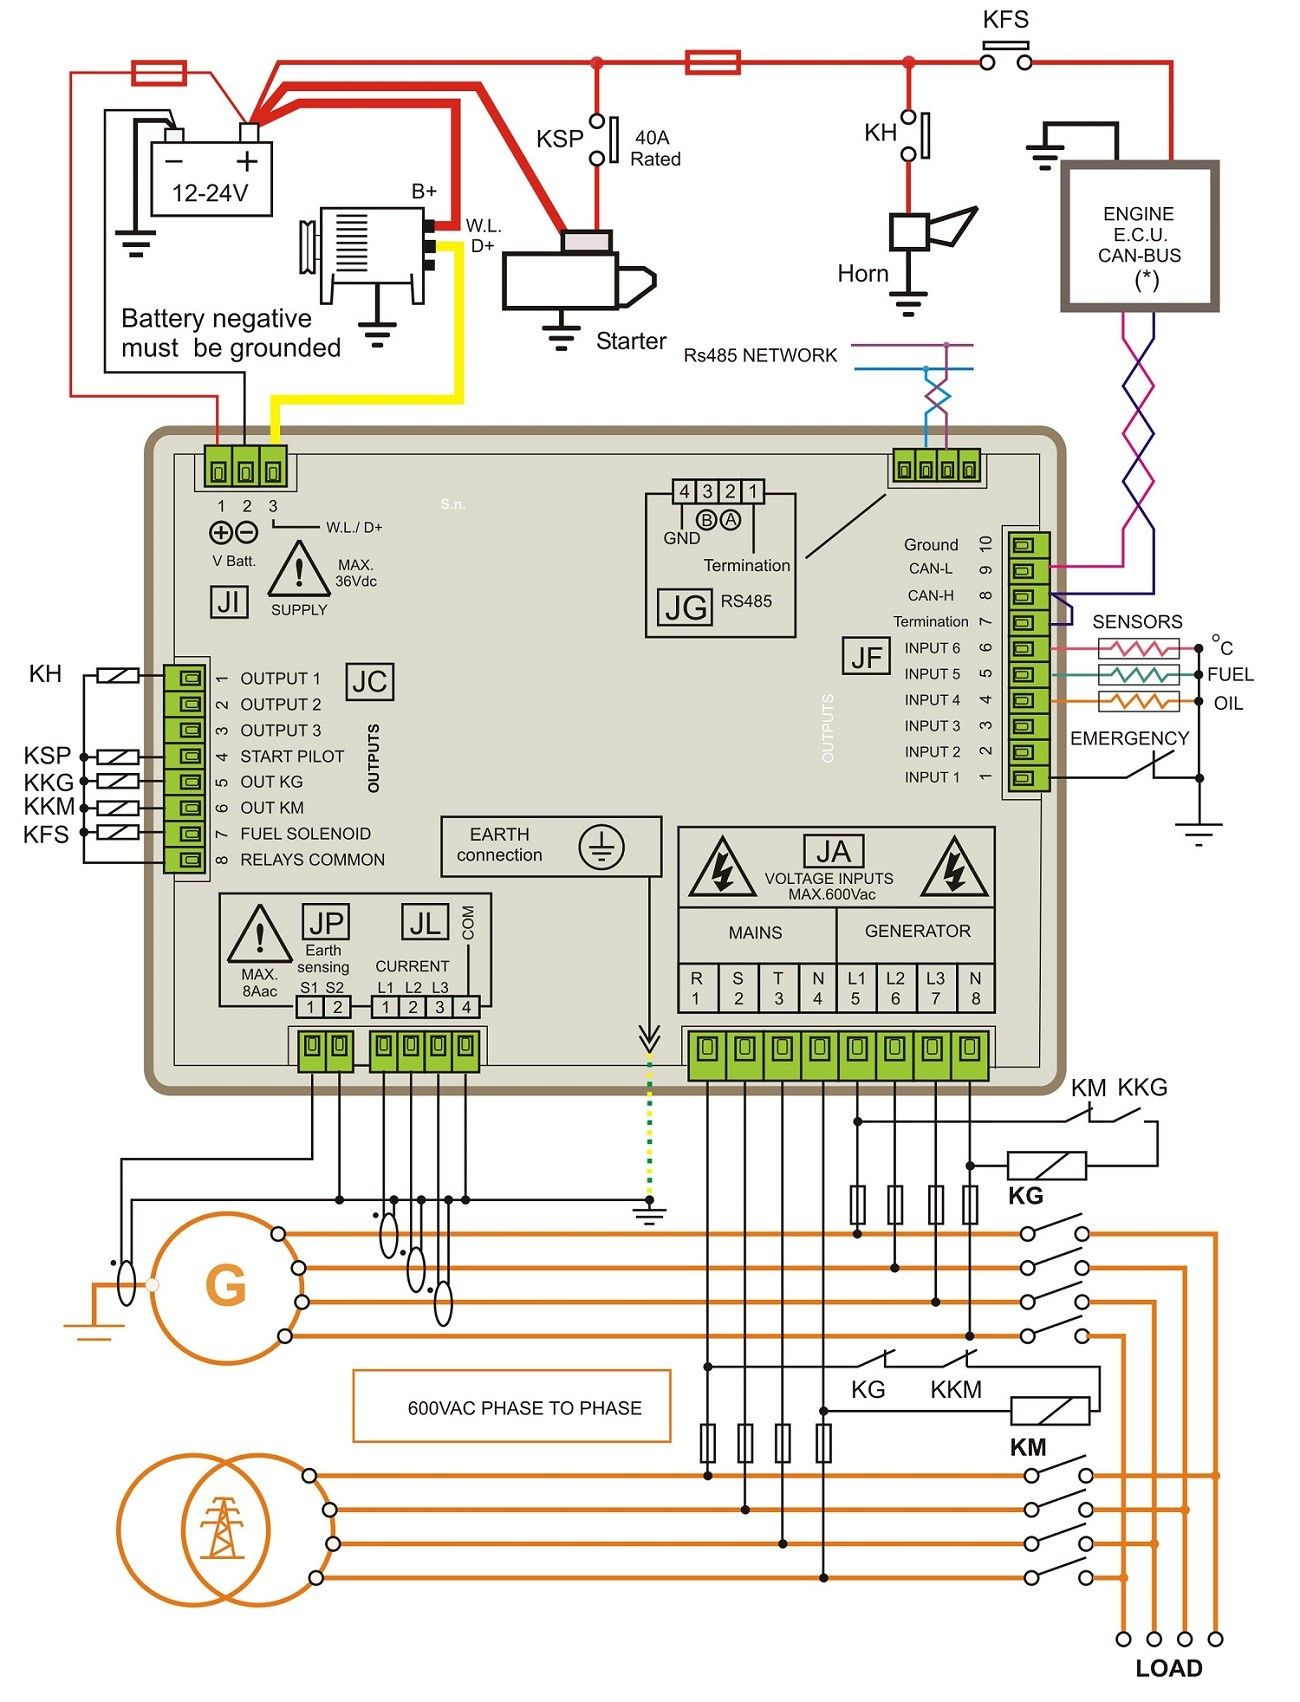 Unique Wiring Diagram For Olympian Generator Diagram Diagramsample Diagramtem Generator Transfer Switch Electrical Wiring Diagram Electrical Circuit Diagram